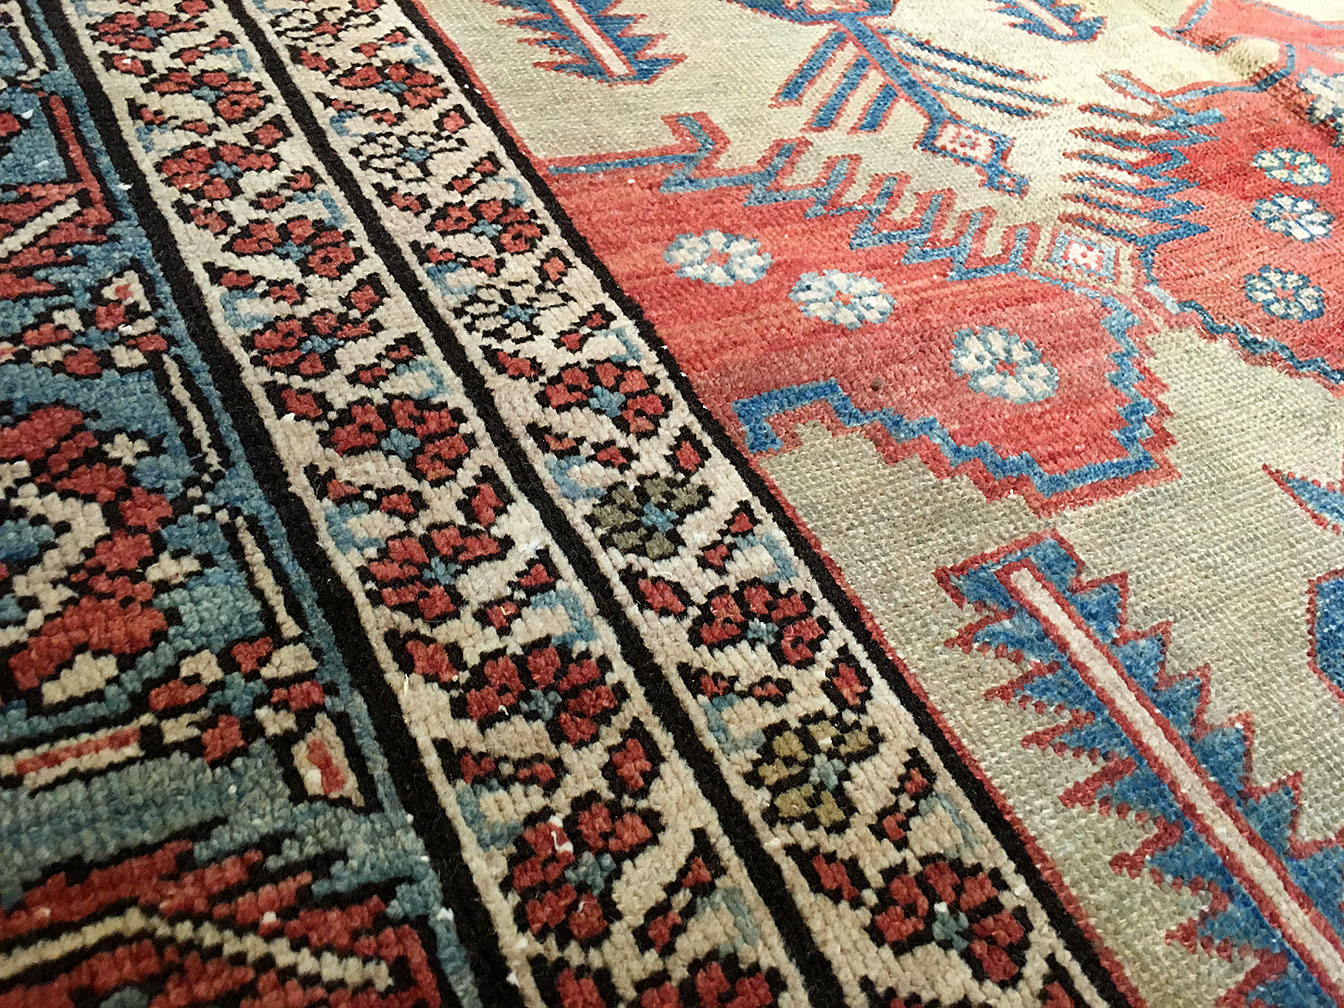 Antique bakshaish Carpet - # 8723